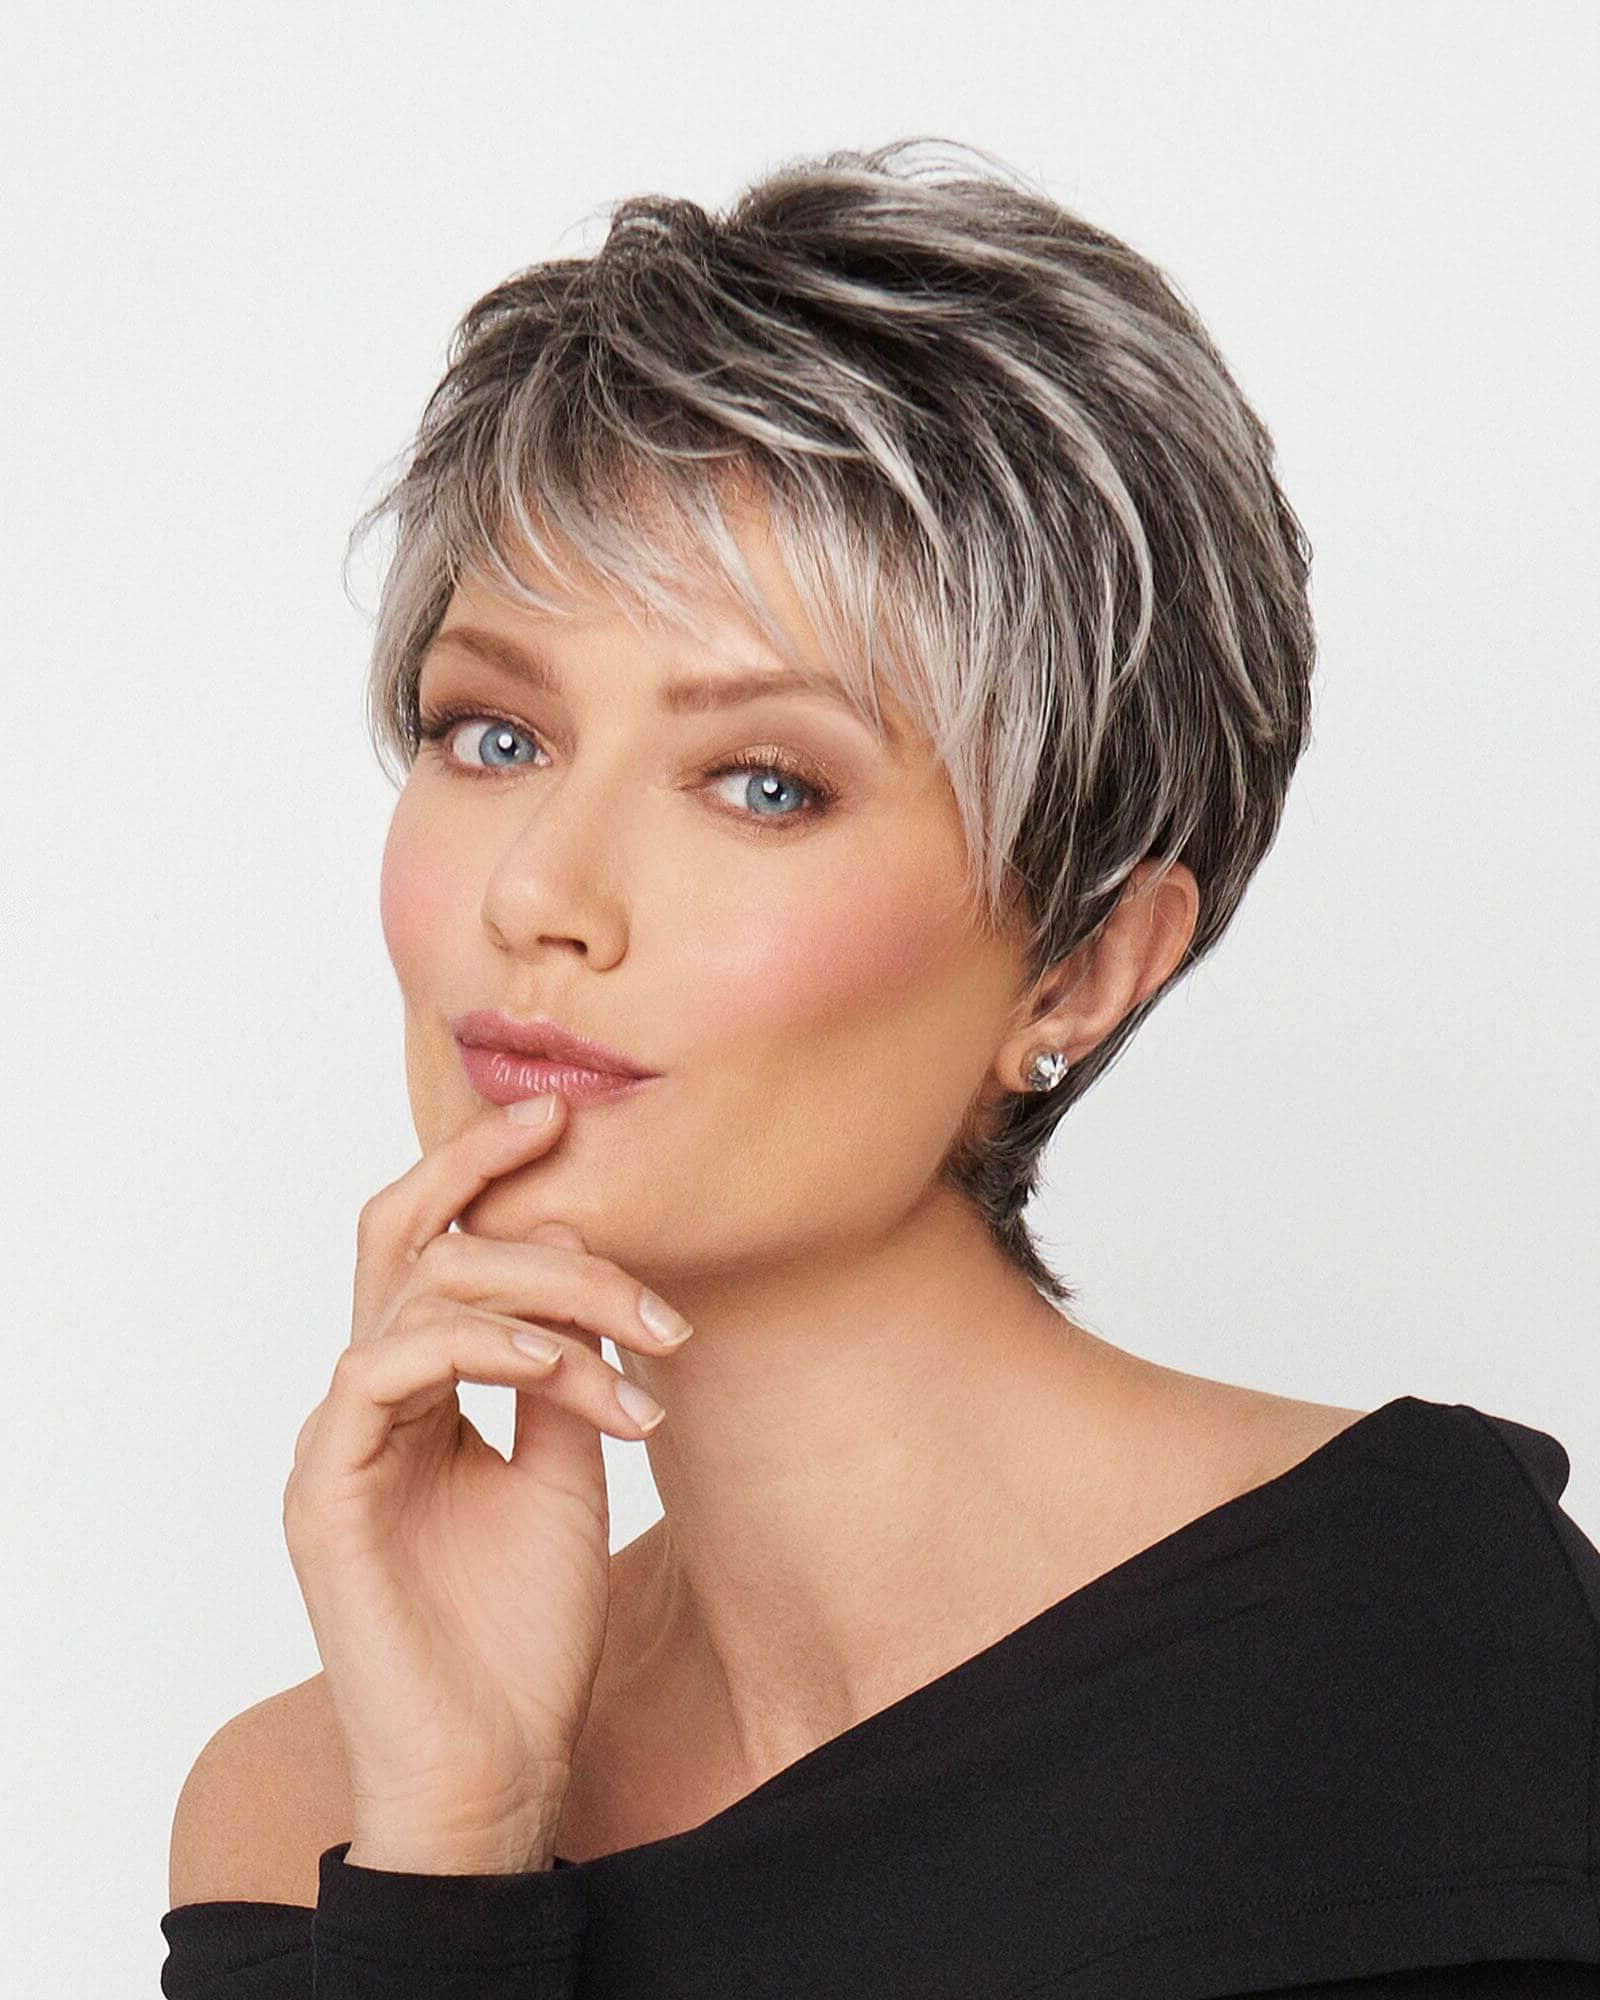 50 Pixie Haircuts You'll See Trending In 2018 For Straight Pixie Hairstyles For Thick Hair (View 14 of 20)